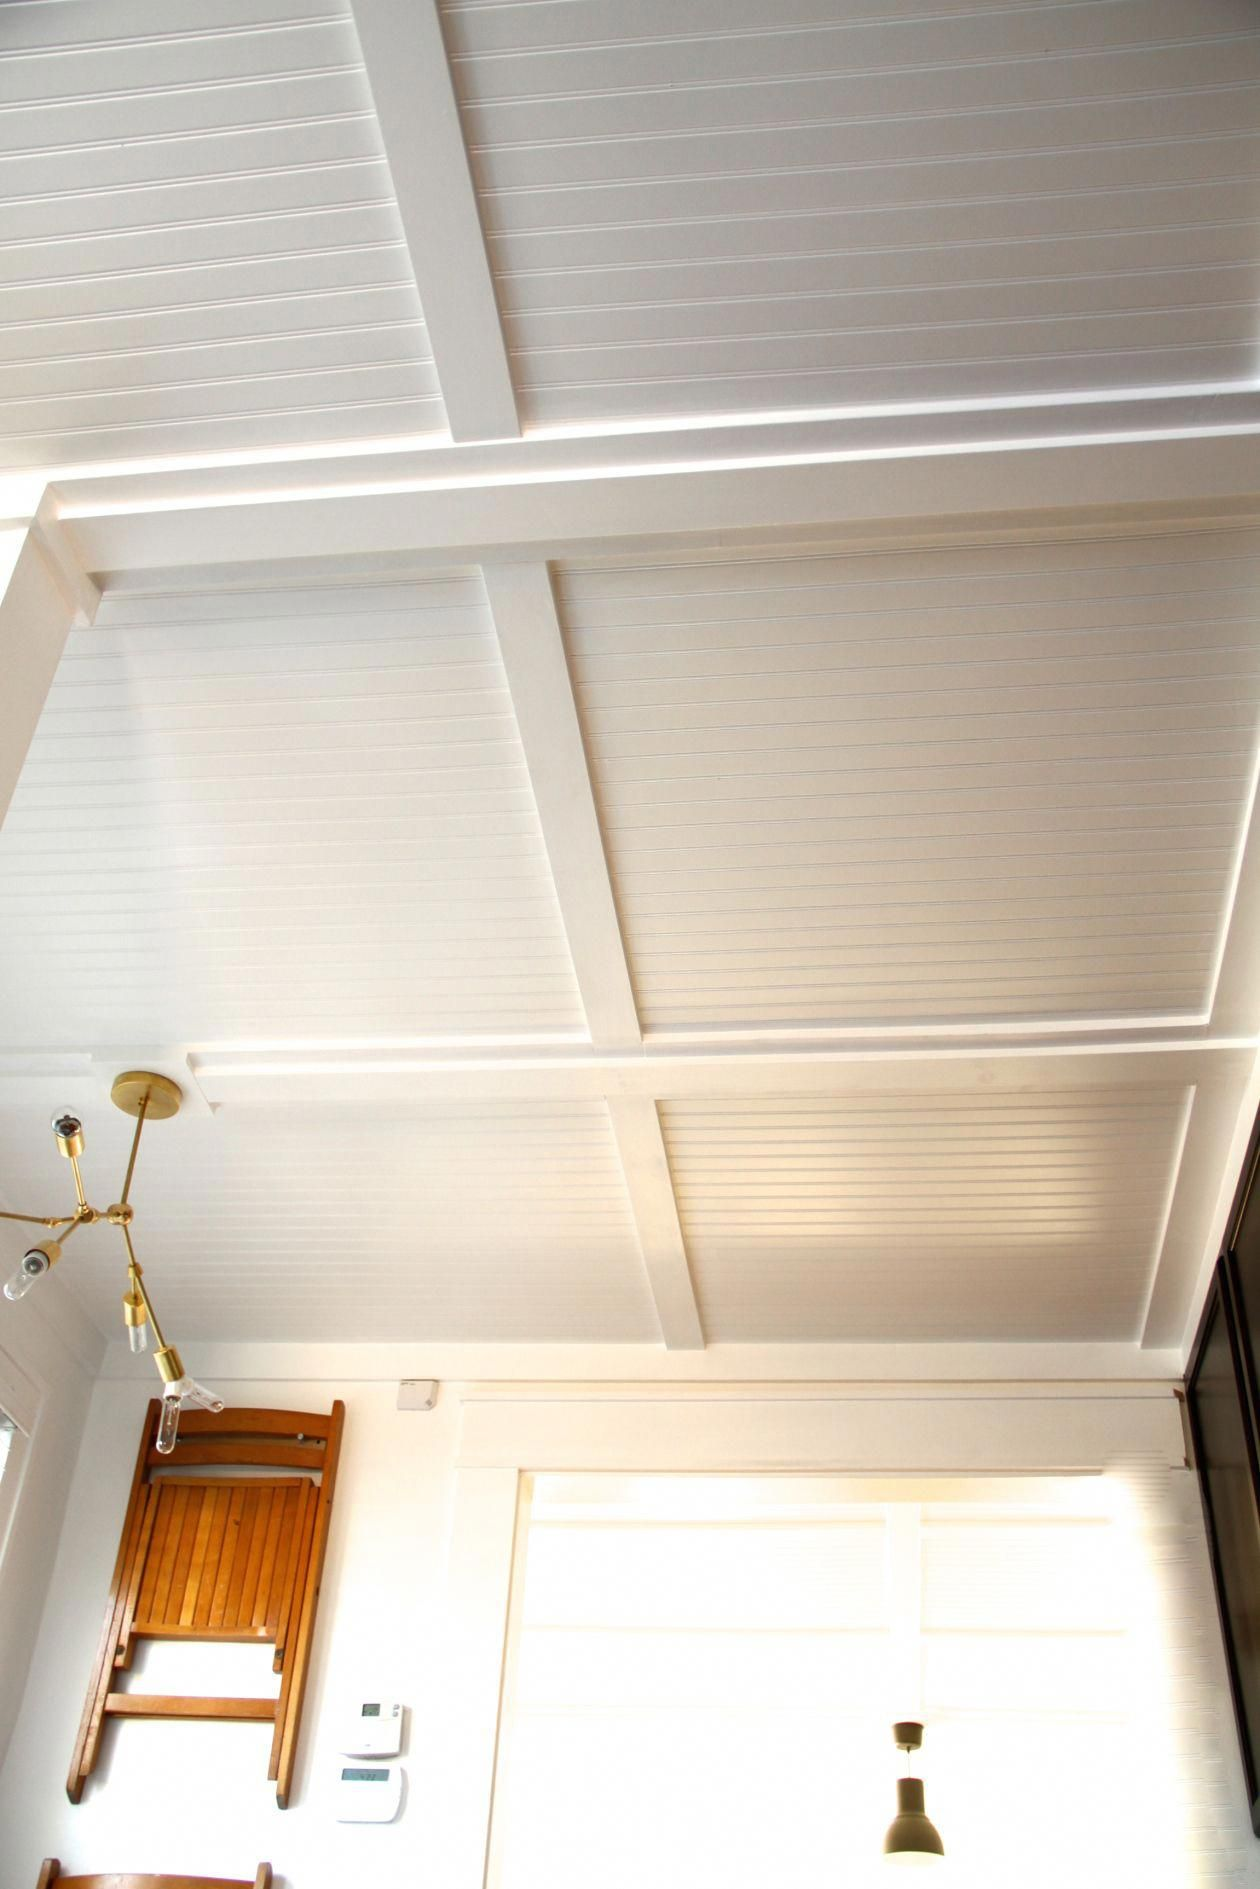 Basement Finishing Ideas And Options With Images Beadboard Ceiling